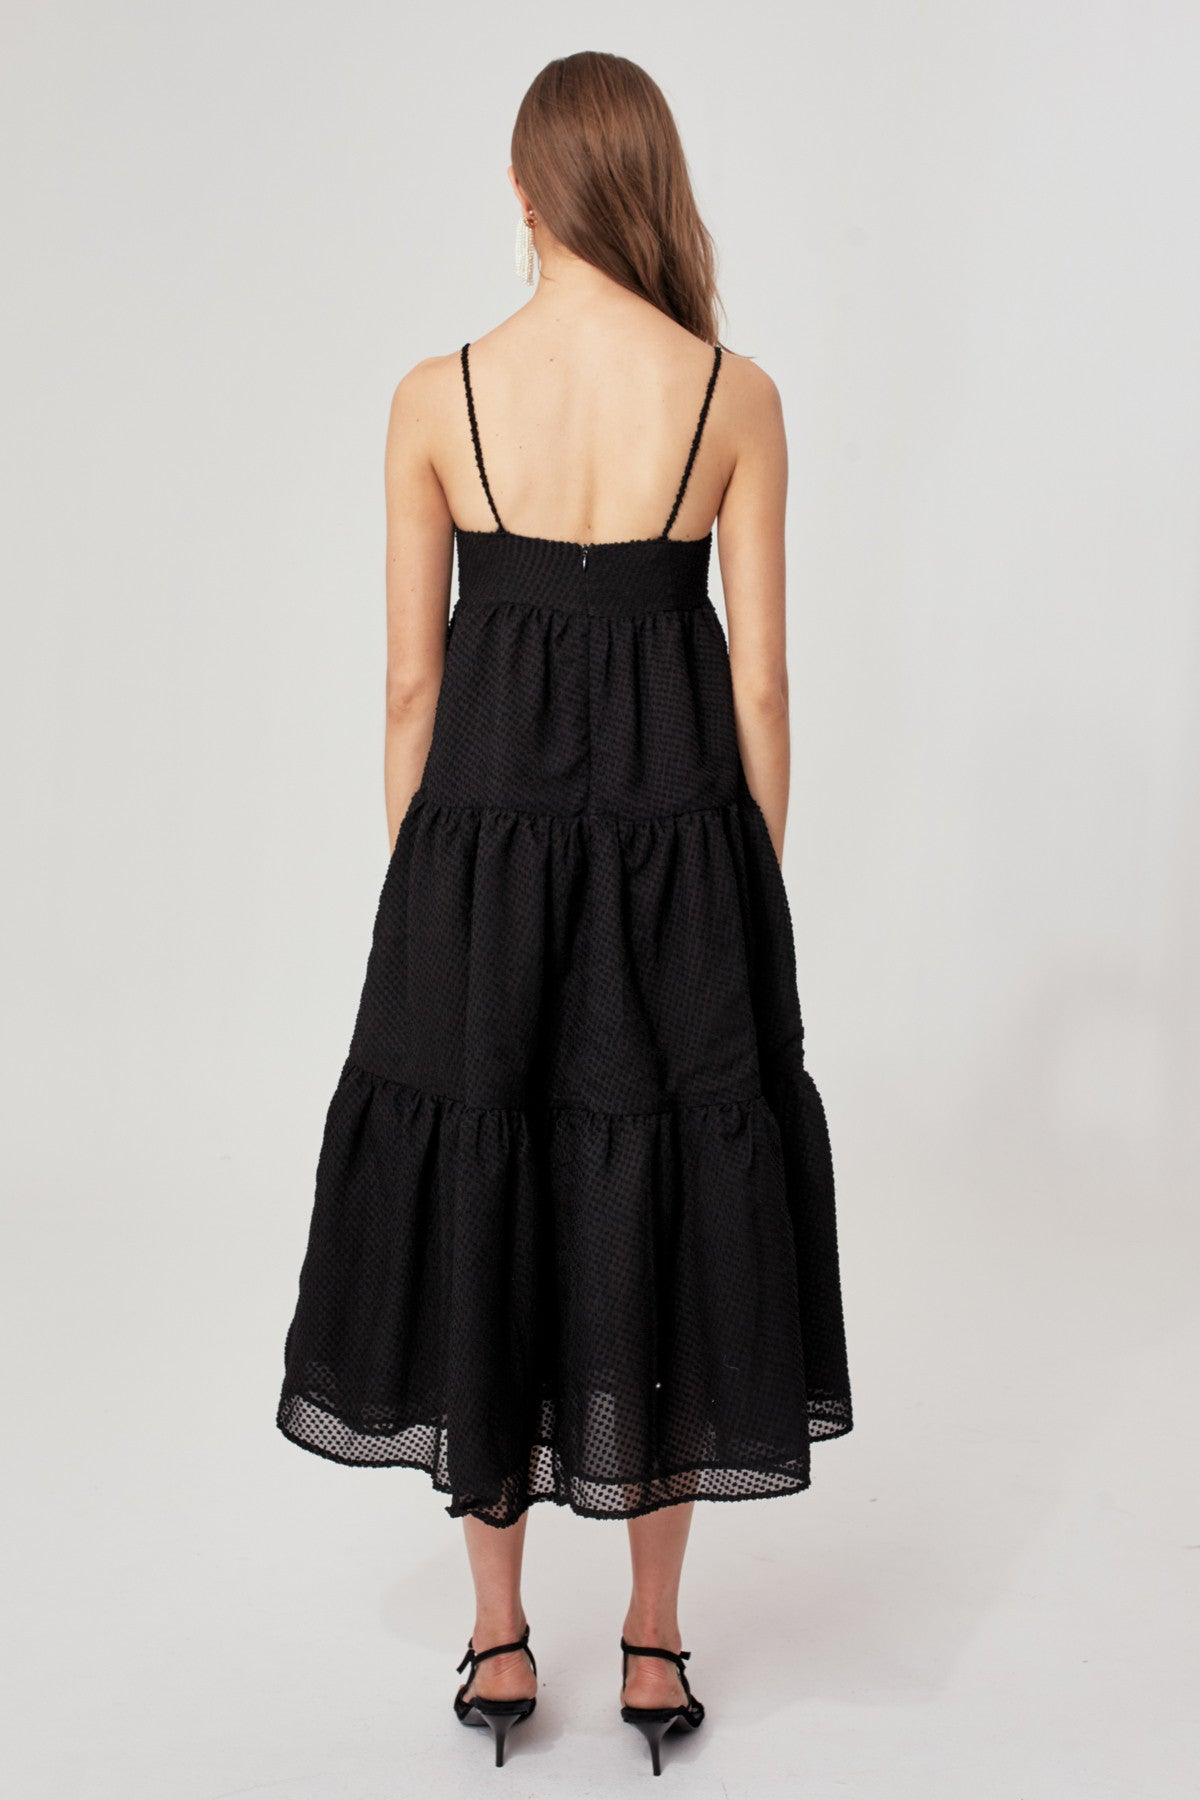 BREAK IN TWO MAXI DRESS black